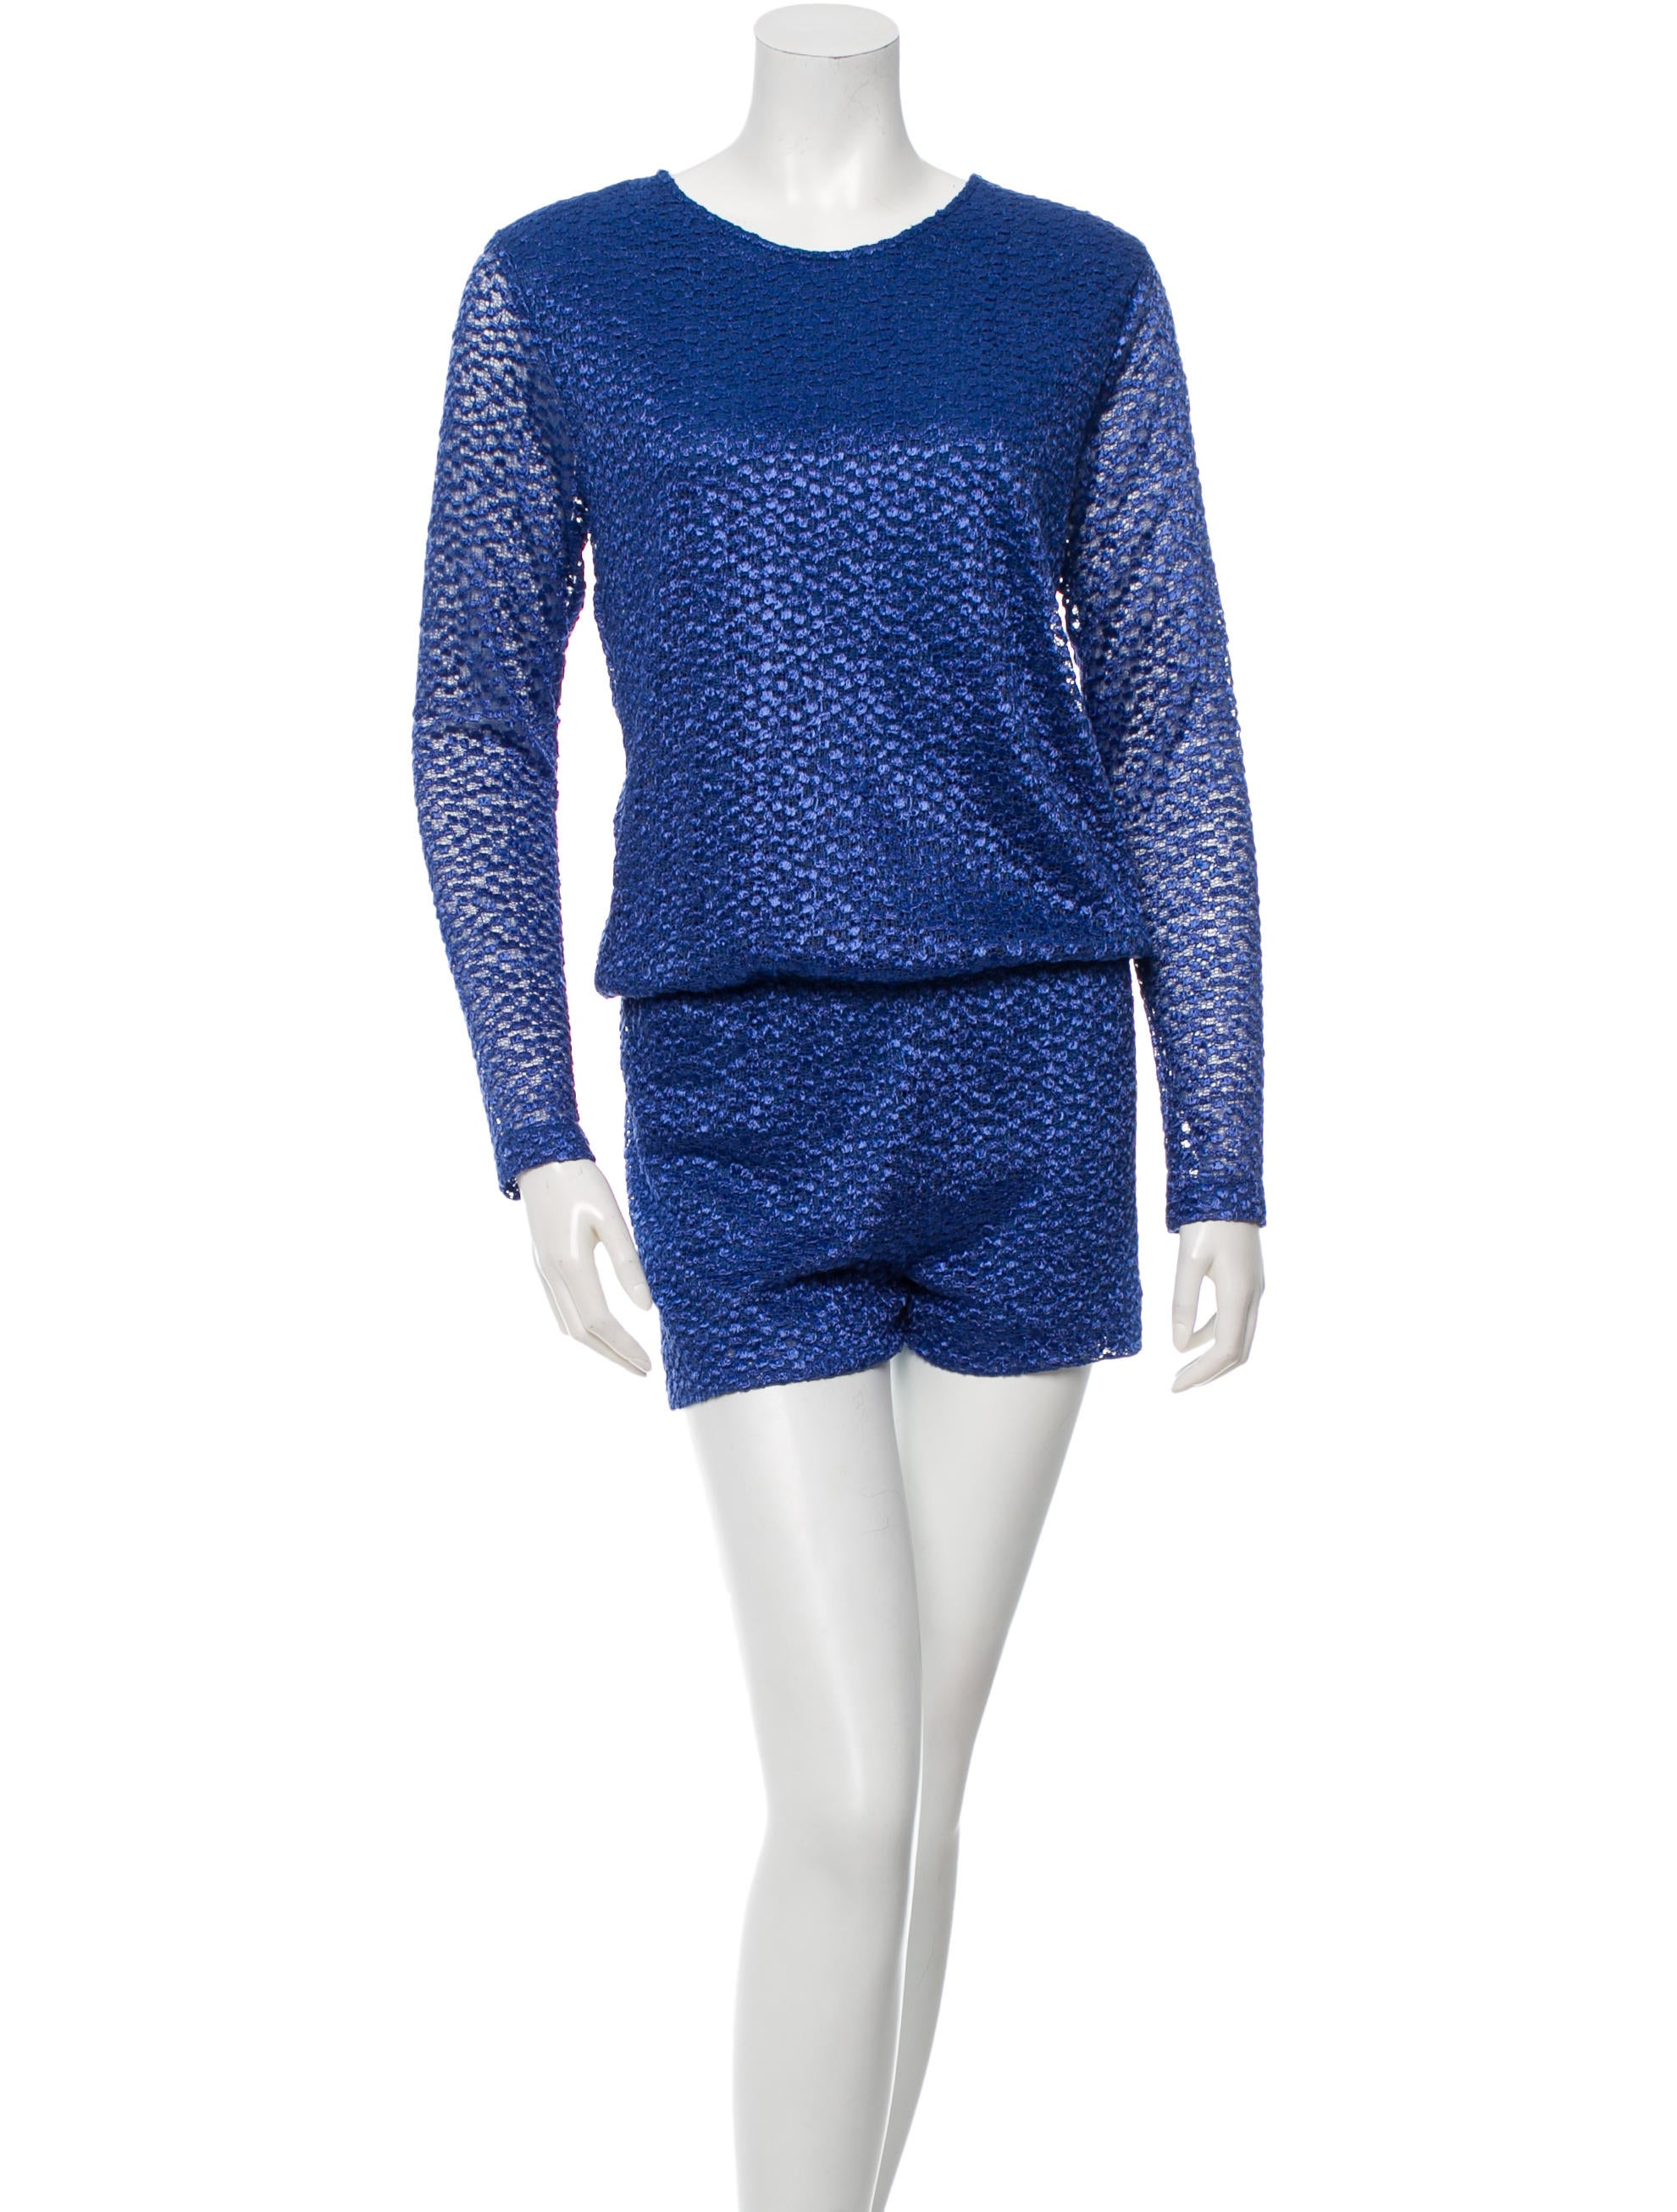 Alexis Knit Long Sleeve Romper - Clothing - WEX21430 | The ...